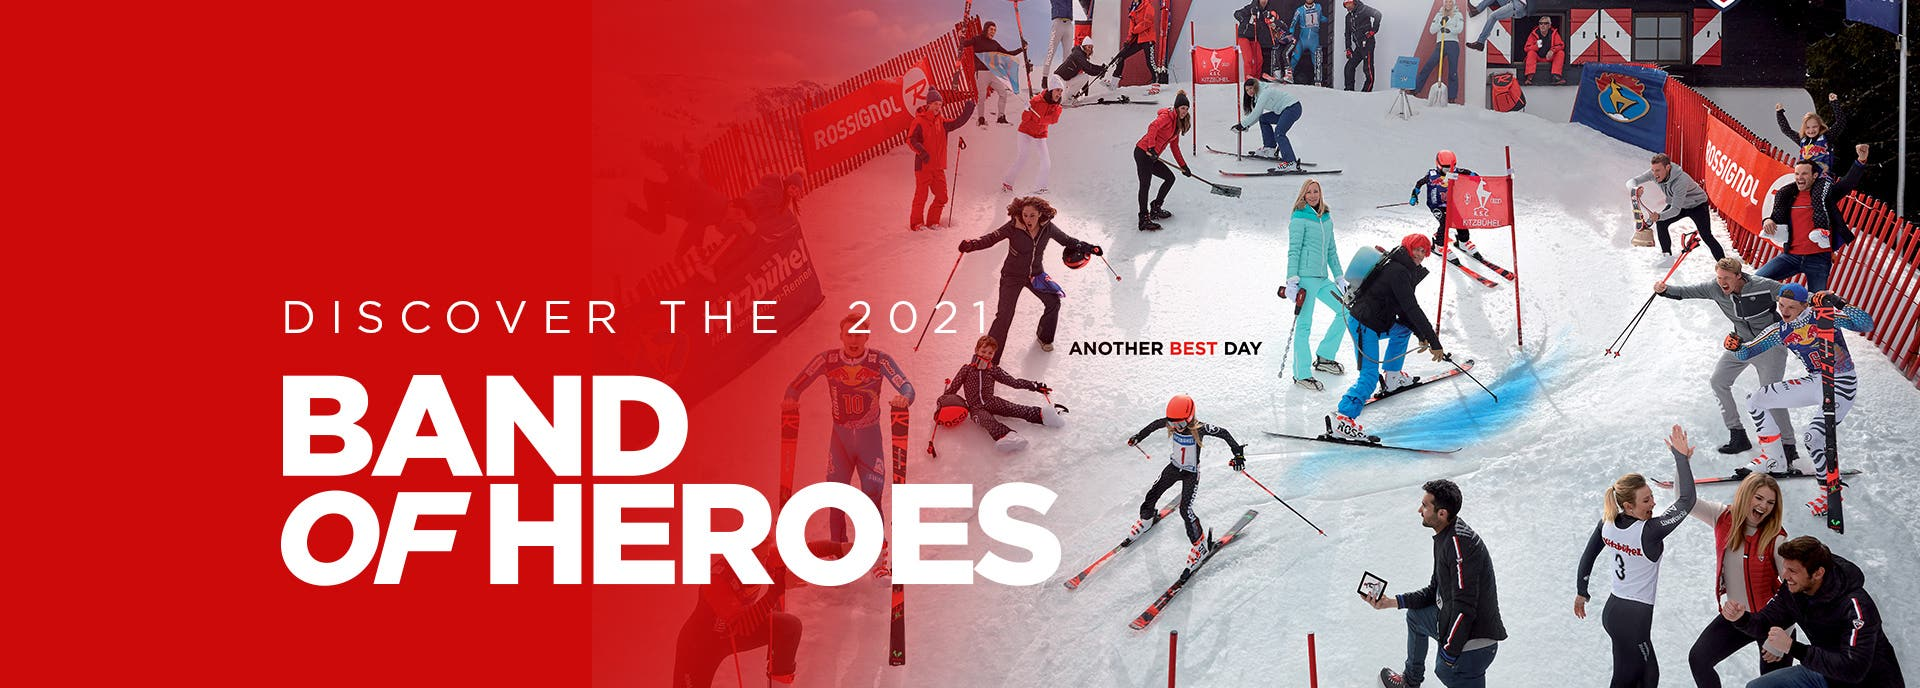 Band of Heroes from Rossignol